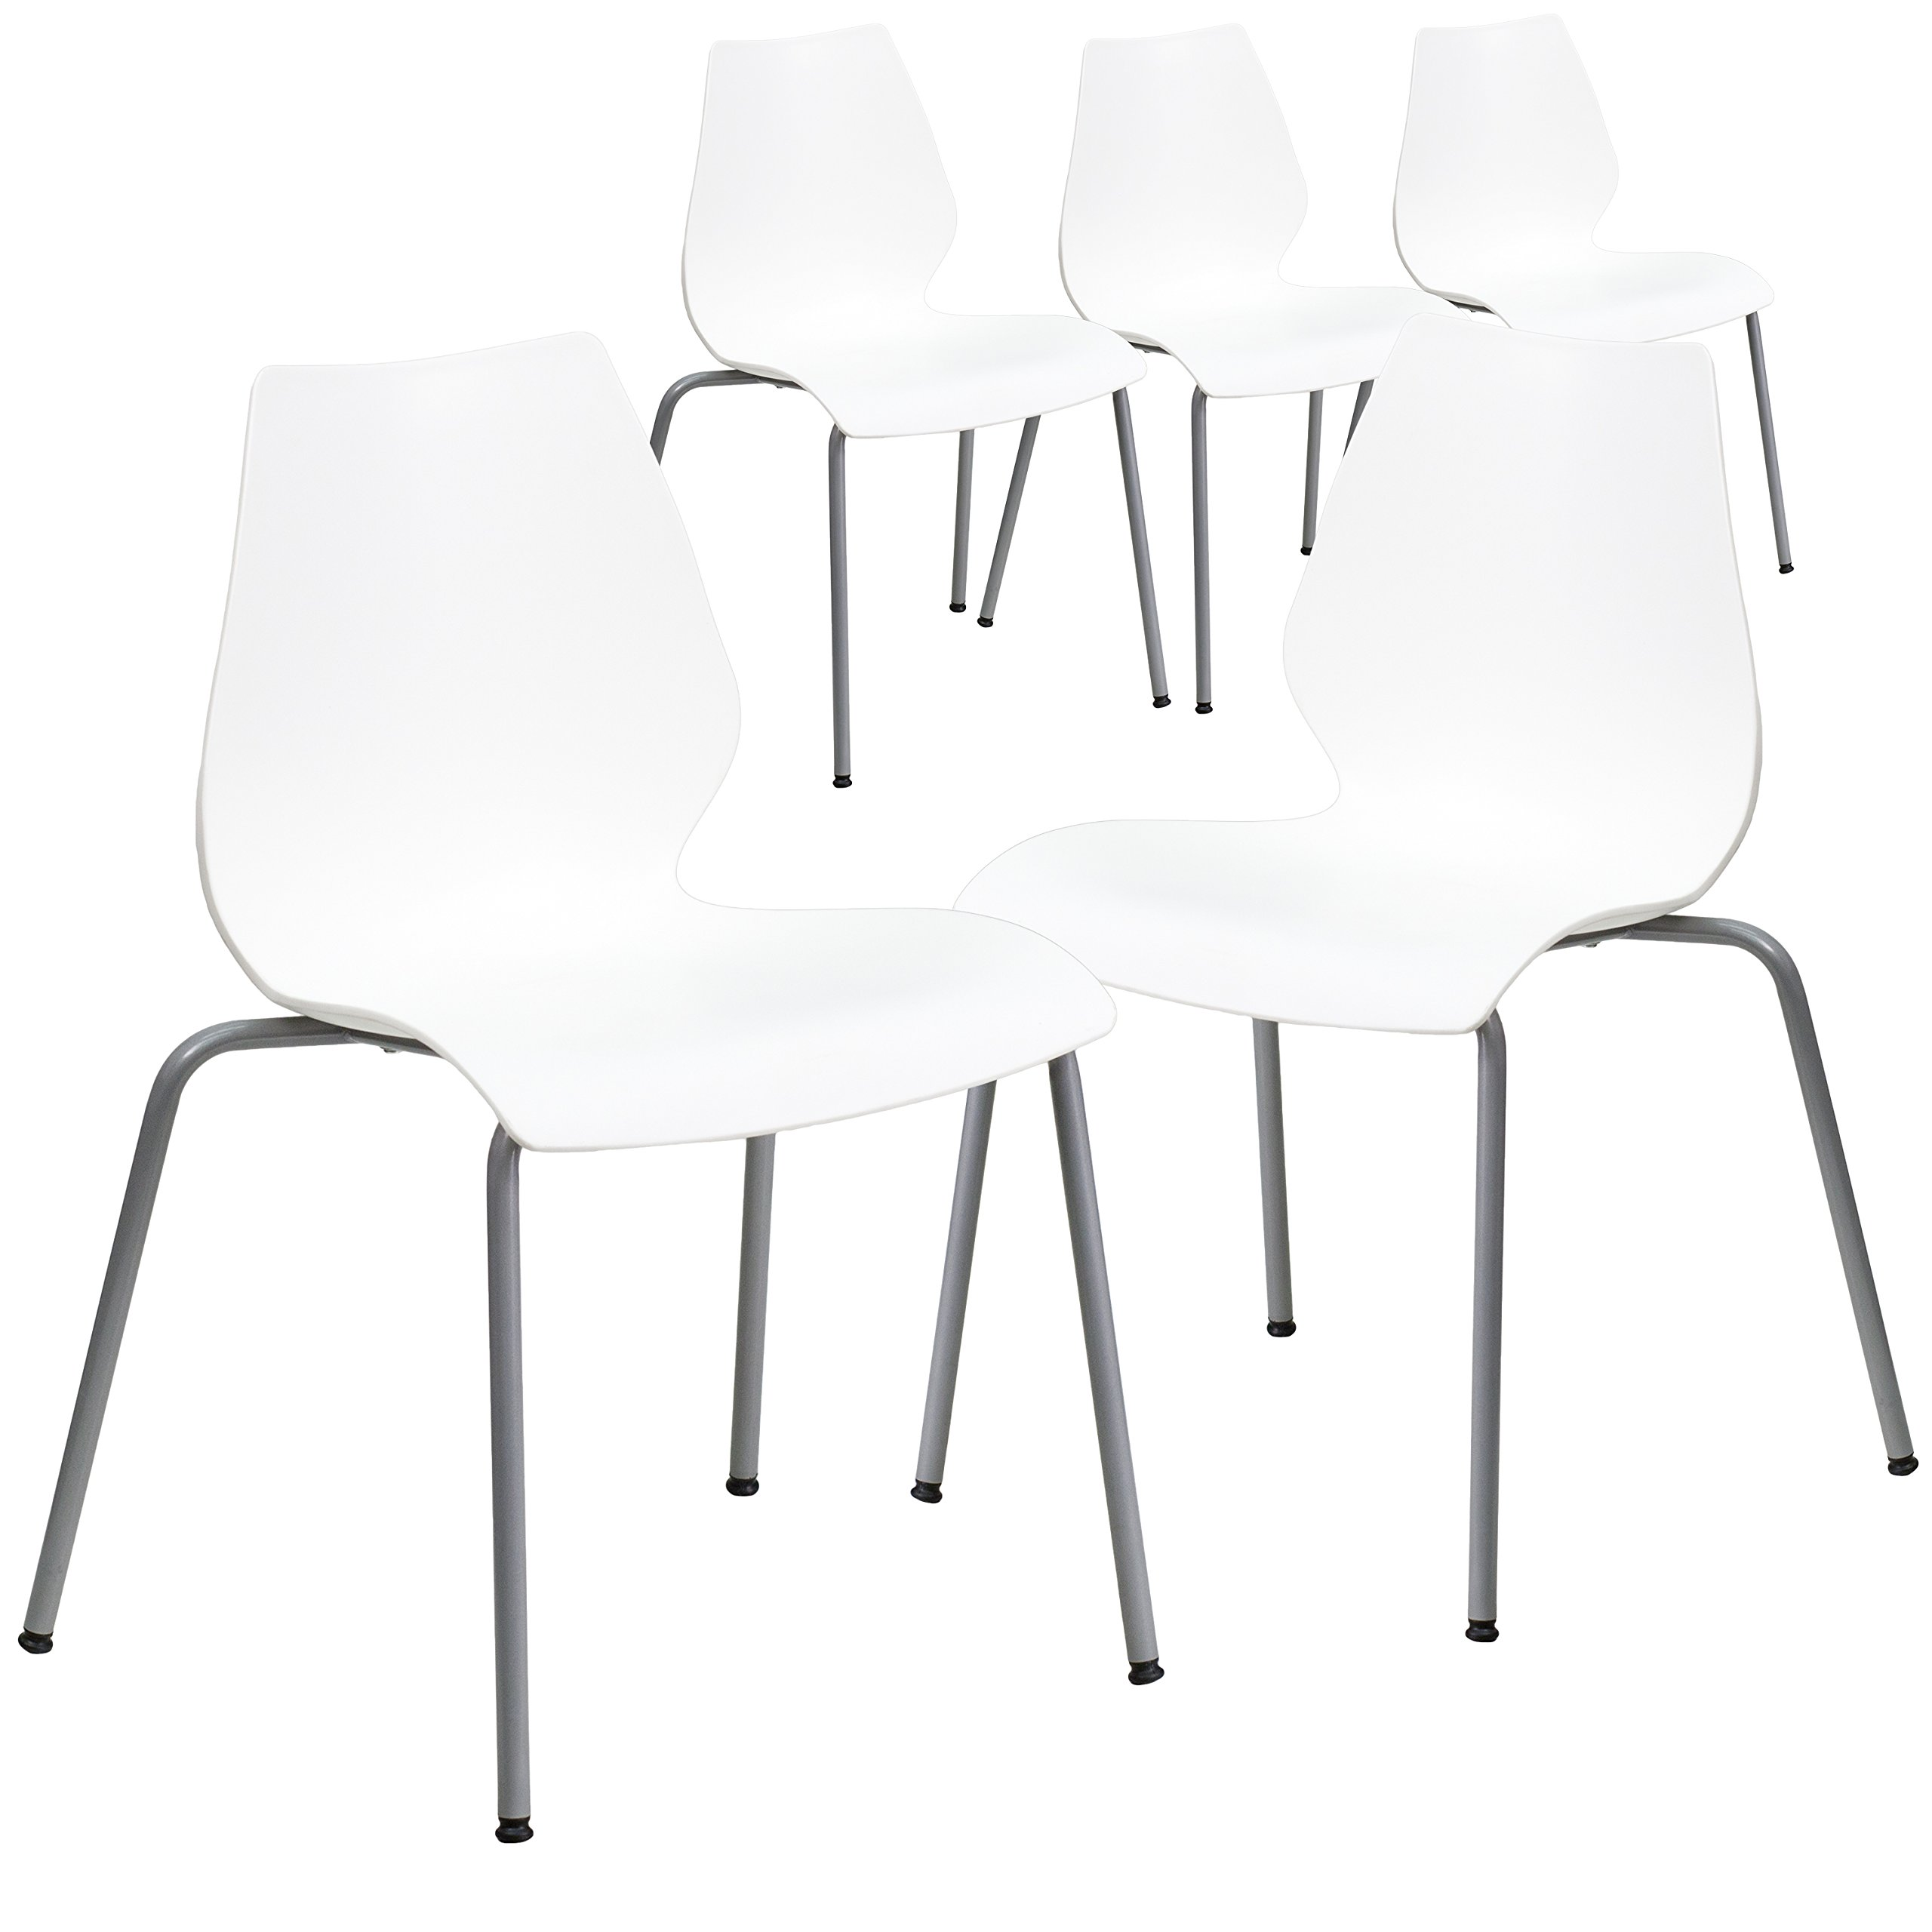 Flash Furniture 5 Pk. HERCULES Series 770 lb. Capacity White Stack Chair with Lumbar Support and Silver Frame by Flash Furniture